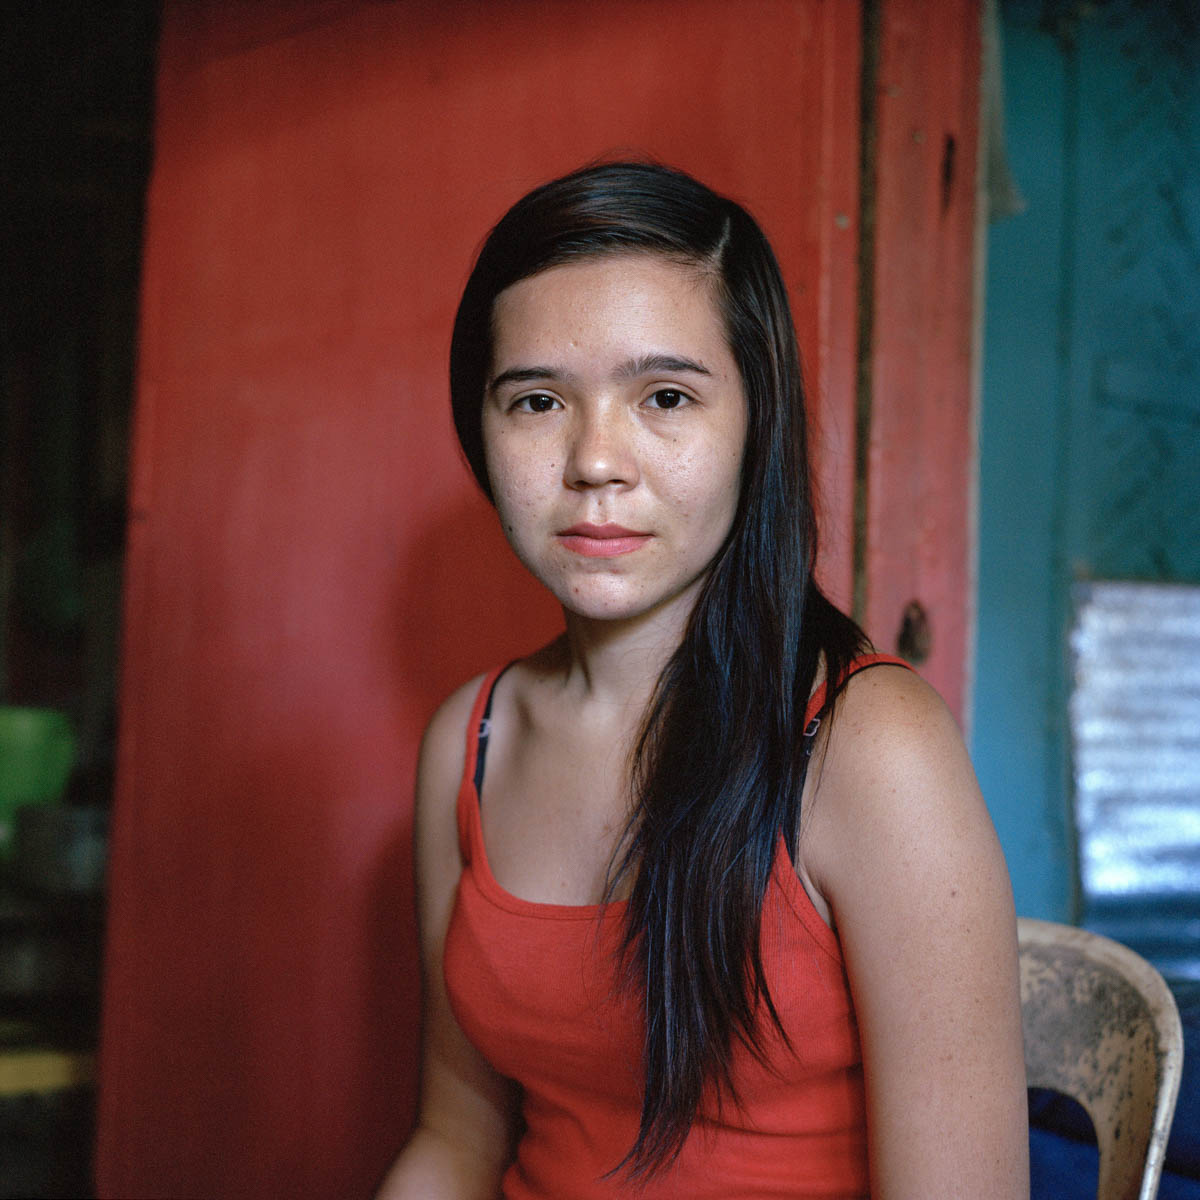 "Mary Grace - Mary Grace, 16 years old. She never met her father, a Swiss citizen, but knows his name. Mary used to have a picture of him, but the humid climate destroyed the print. She grew up with her aunt. Angeles City, Philippines, August 2014. - Copyright © © S. Borcard - N. Metraux - Angeles - Central Luzon - Philippines - <A href=""https://maps.google.com/?ll=15.168055,120.586388&z=16"" target=""_blank"">(Map Mary Grace)</A>"